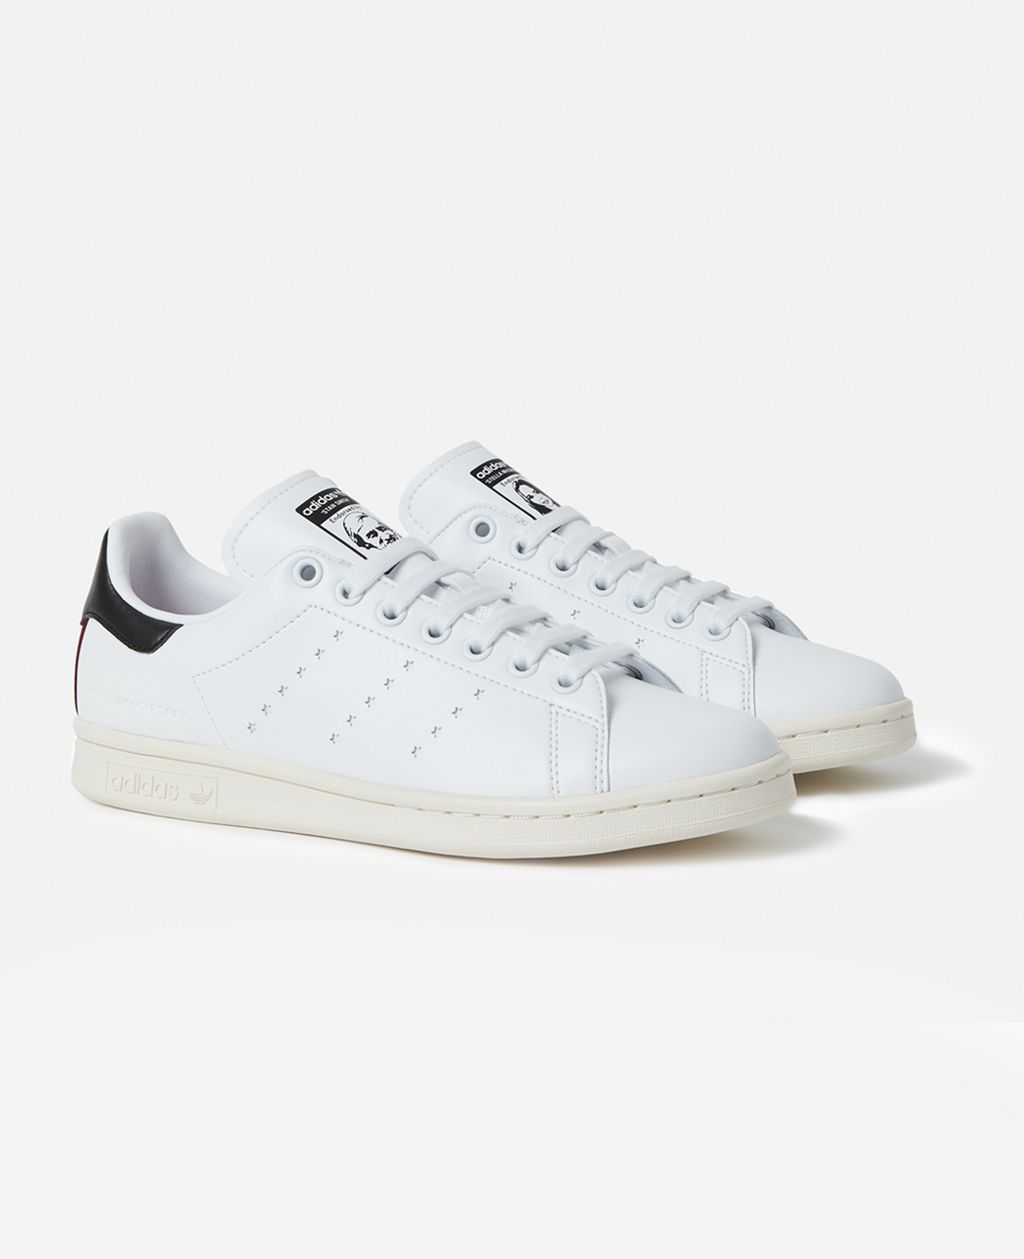 huge discount e5149 ce5e8 Luxury Sneakers are Taking Animal Welfare, Sustainability in ...